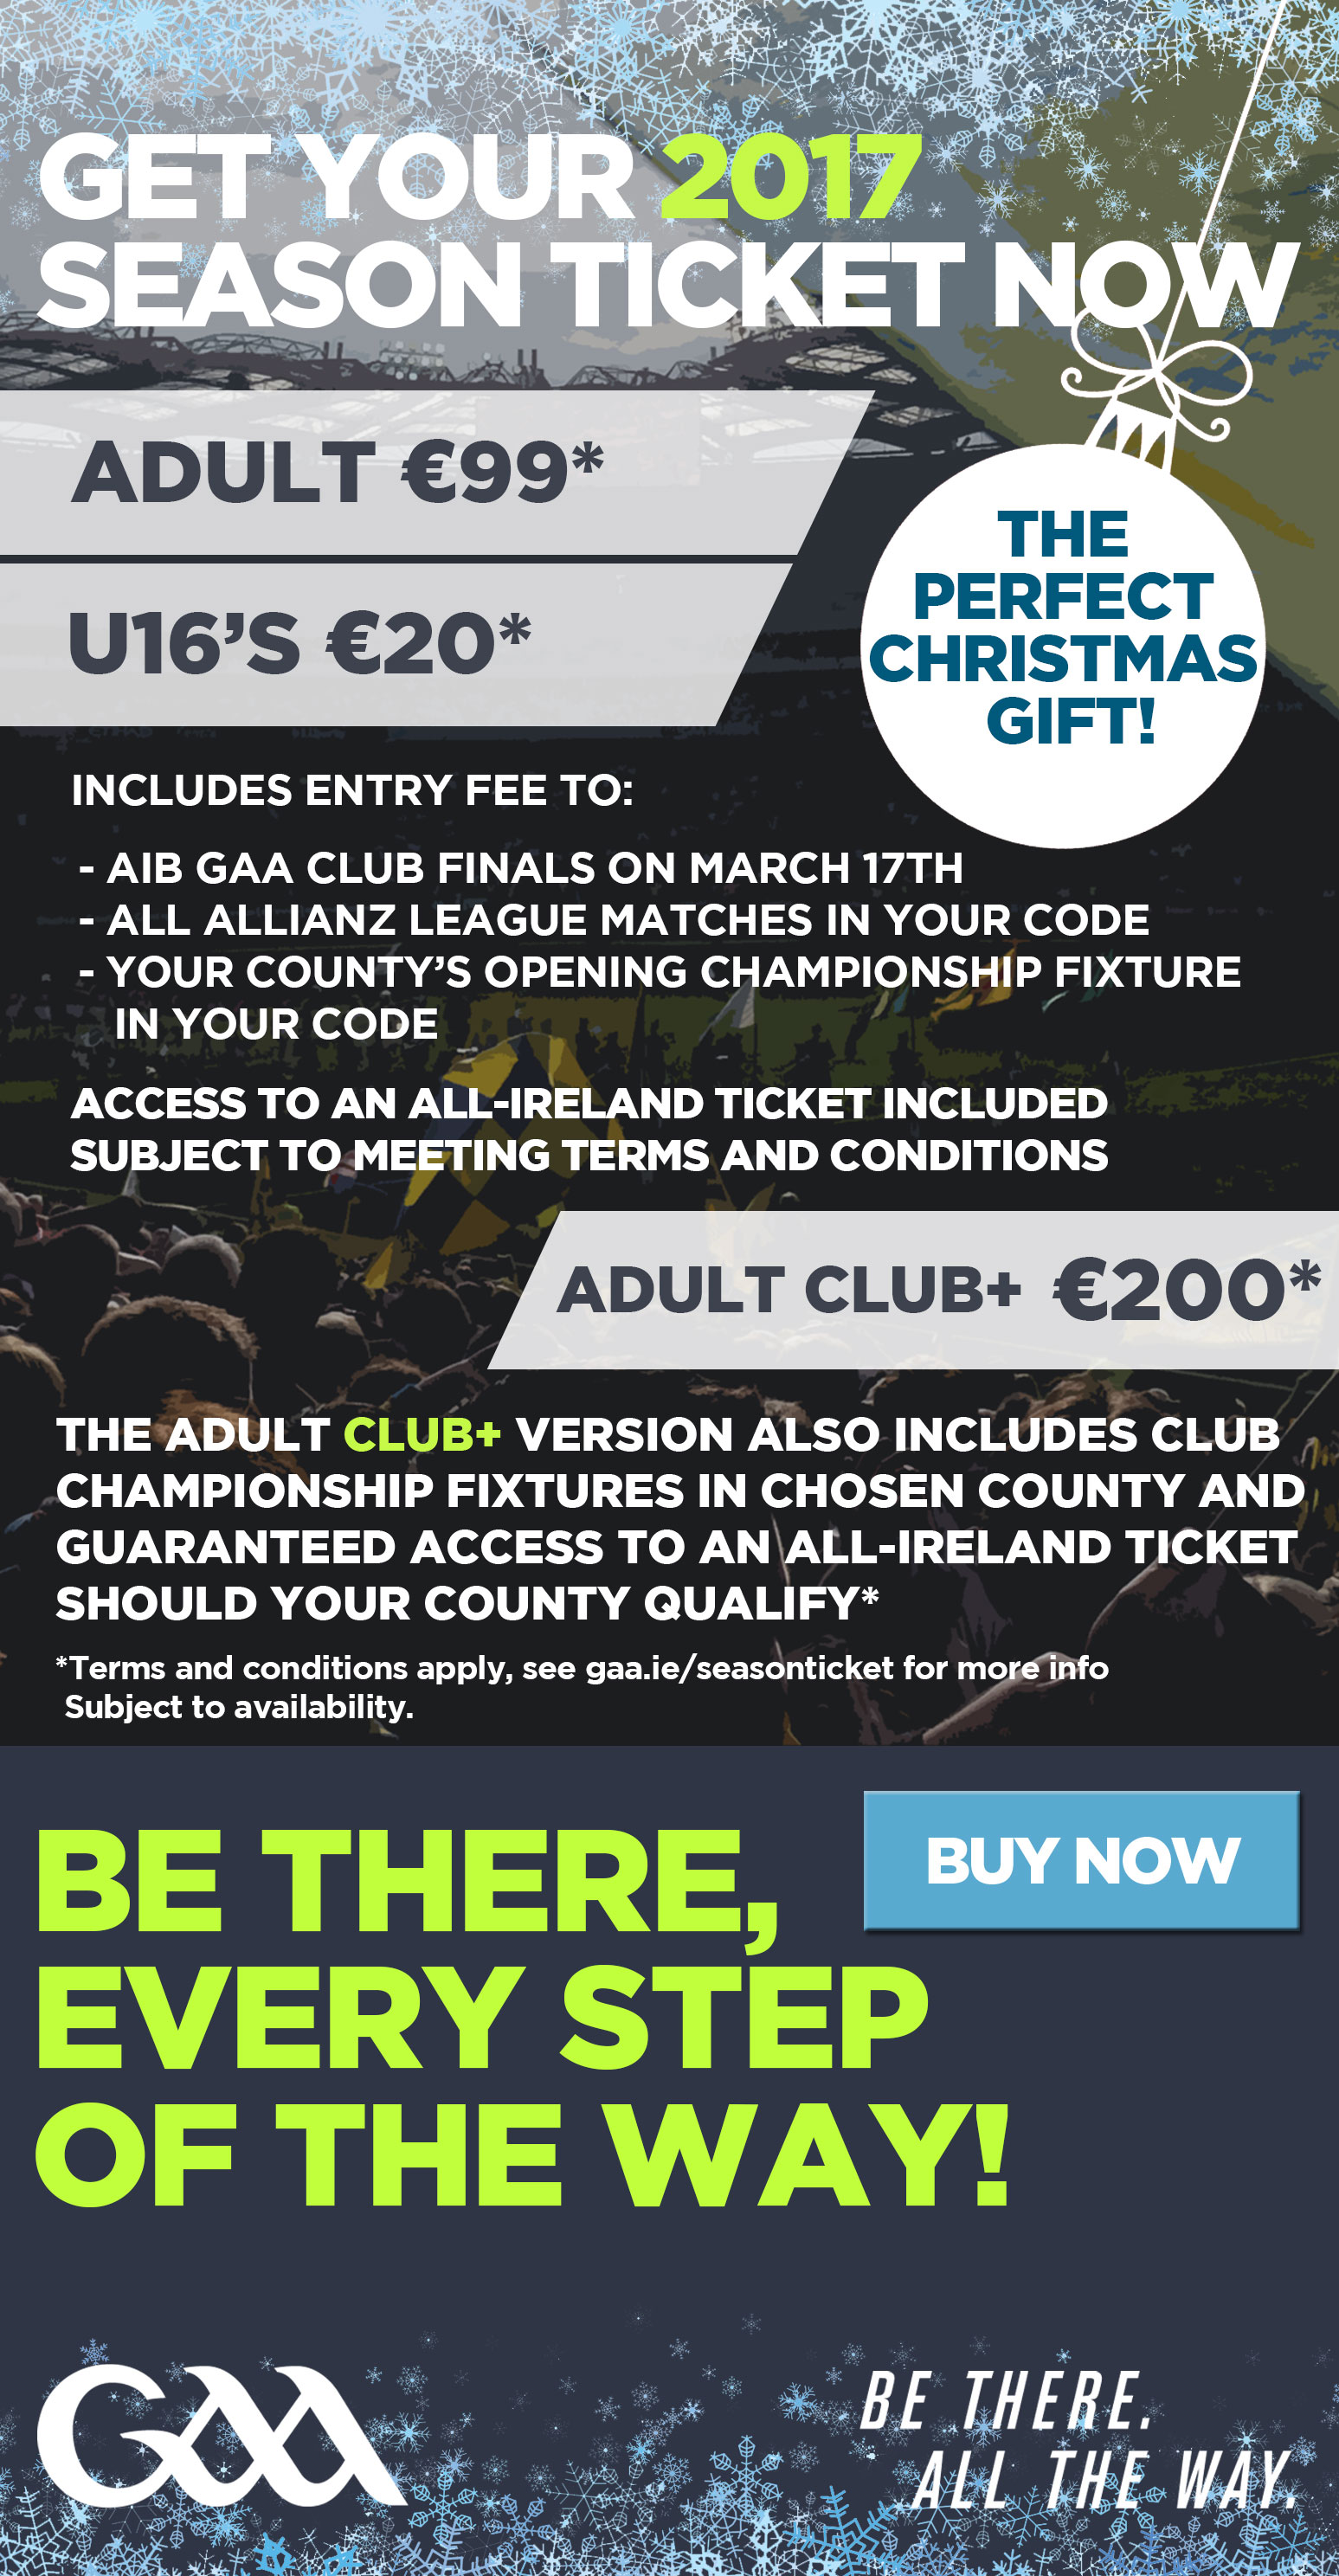 The Perfect Christmas Present for all GAA supporters